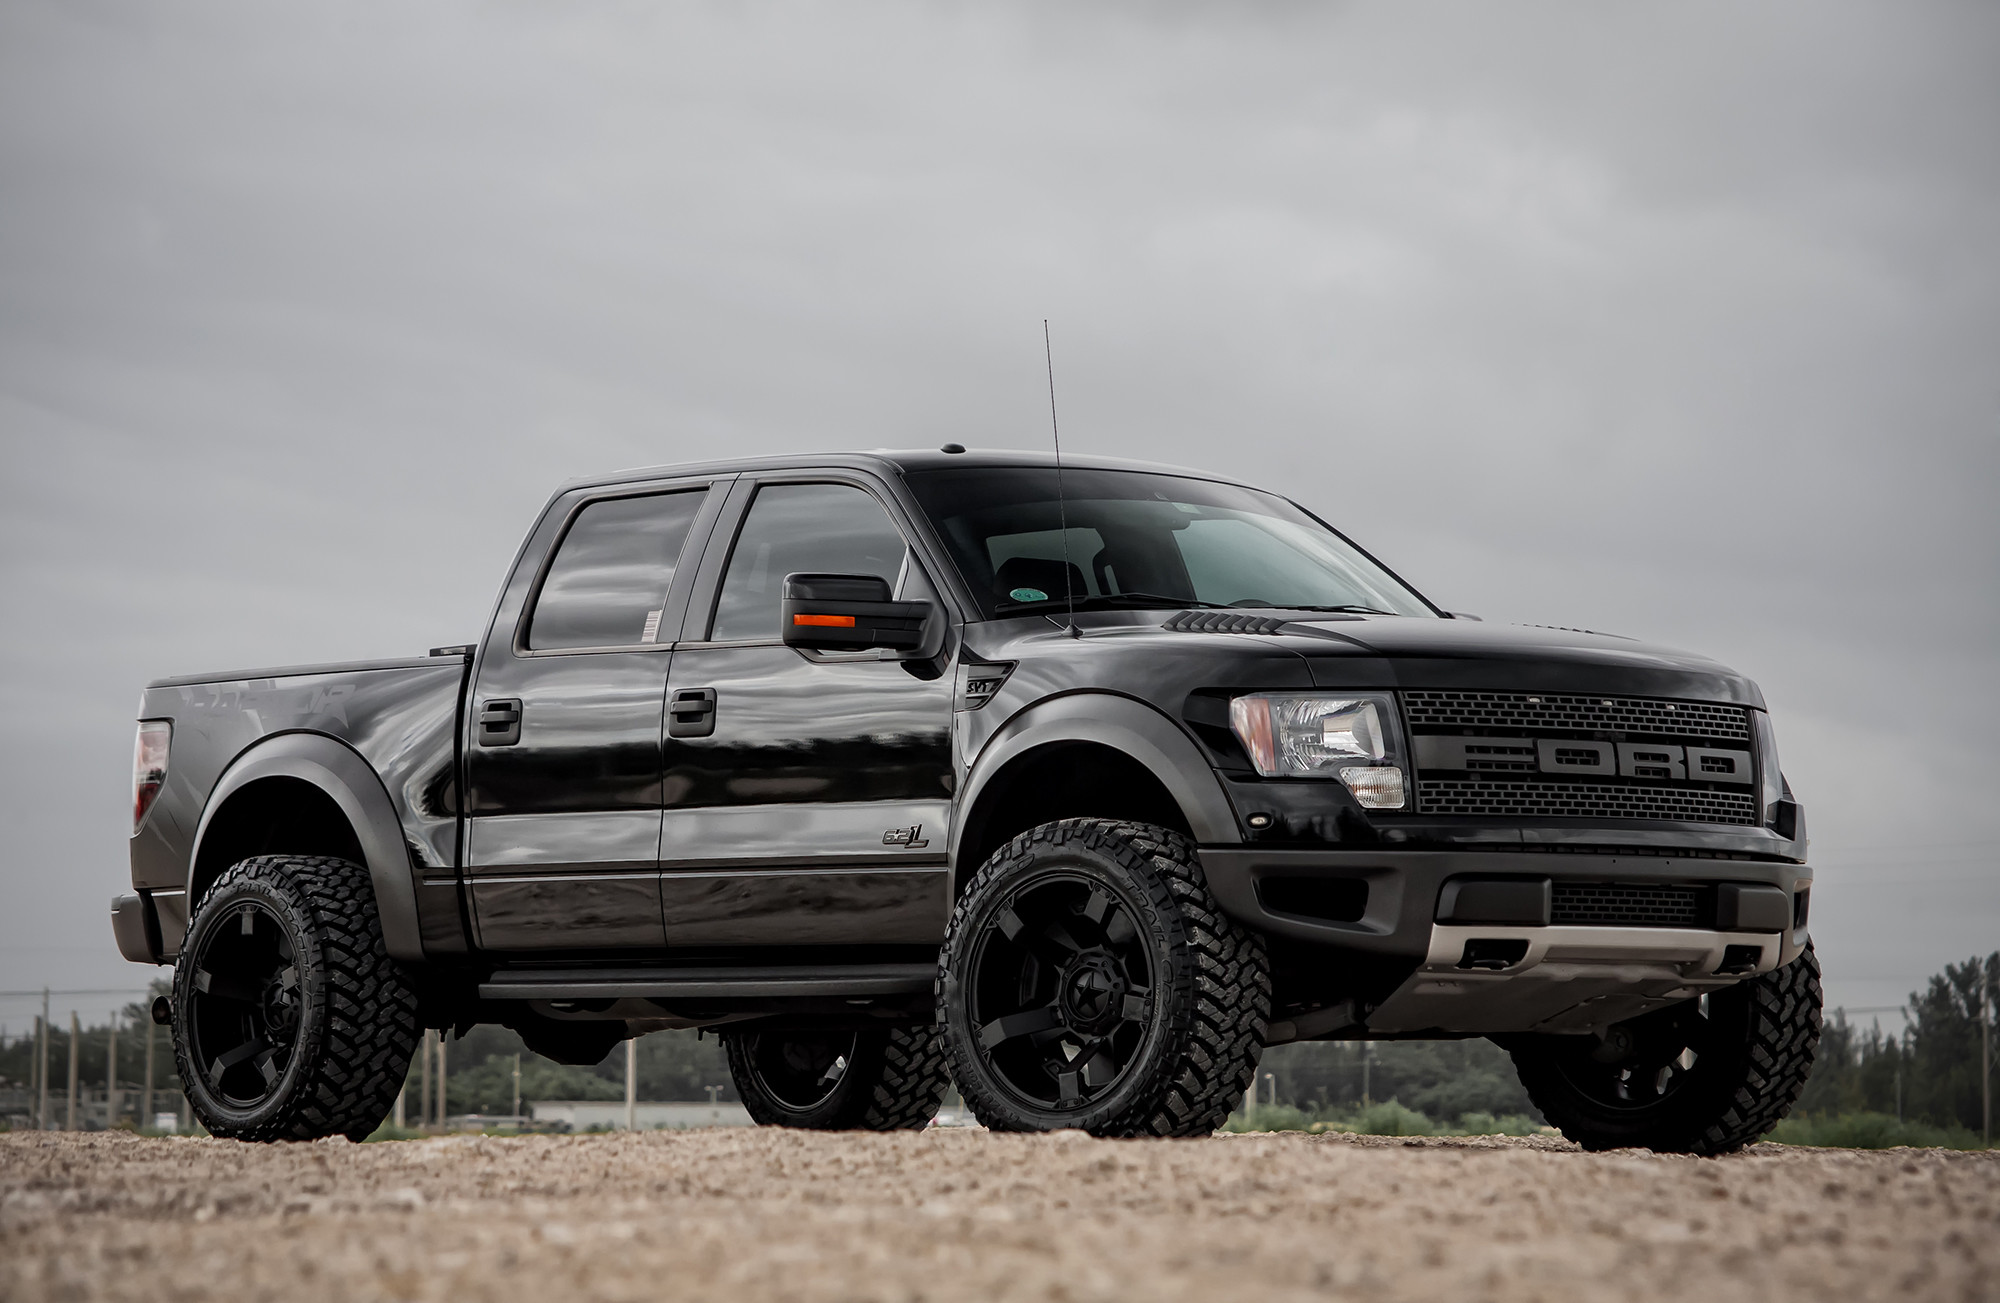 Customized Ford SVT Raptor Black With Suspension Leveling Wallpaper  Wallpaper